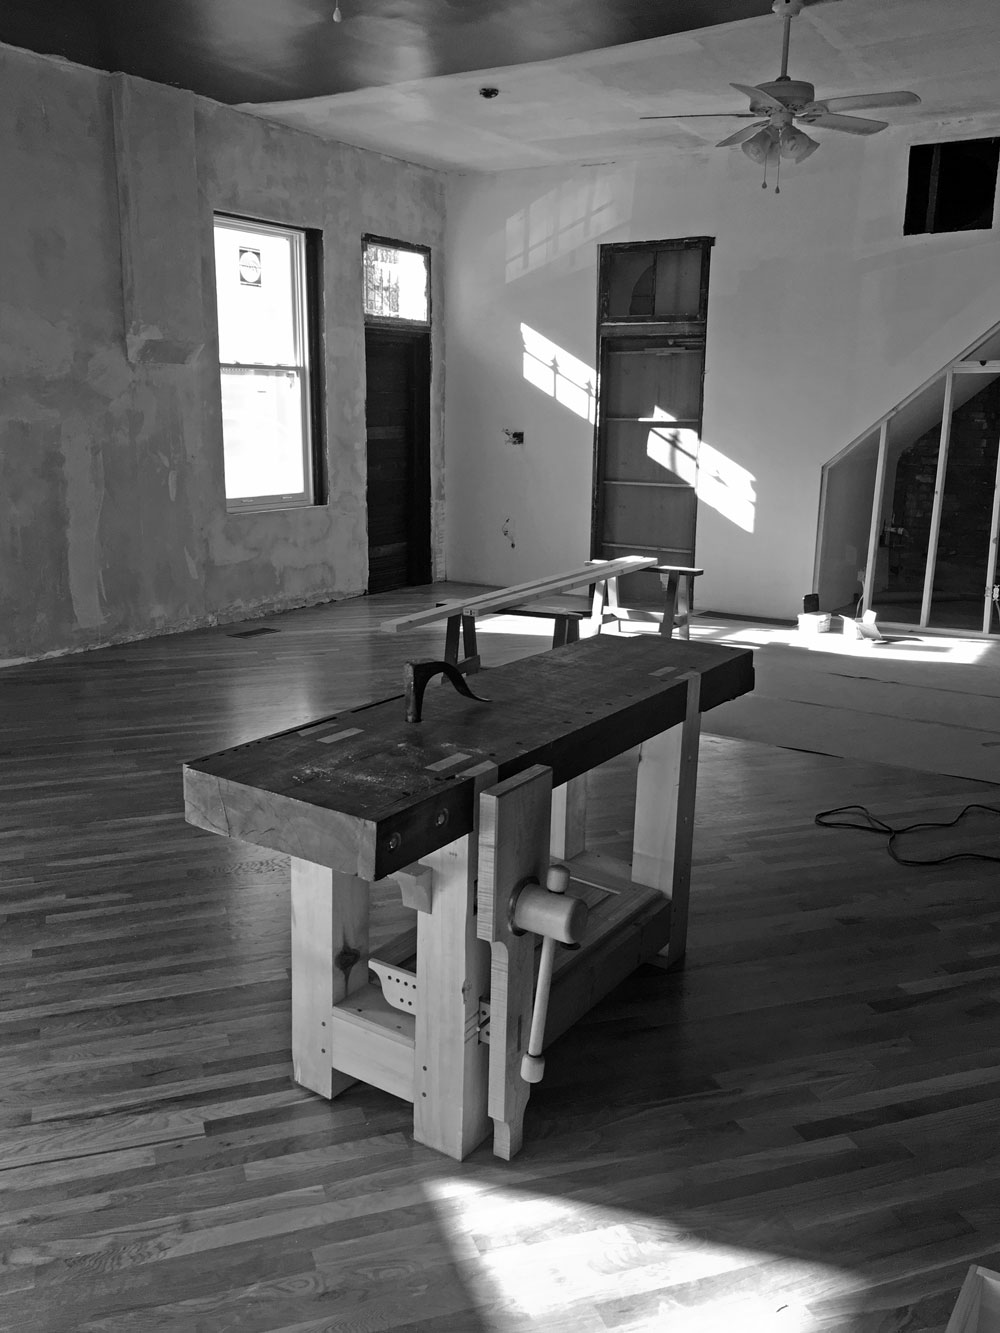 'The Anarchist's Workbench.' Why?